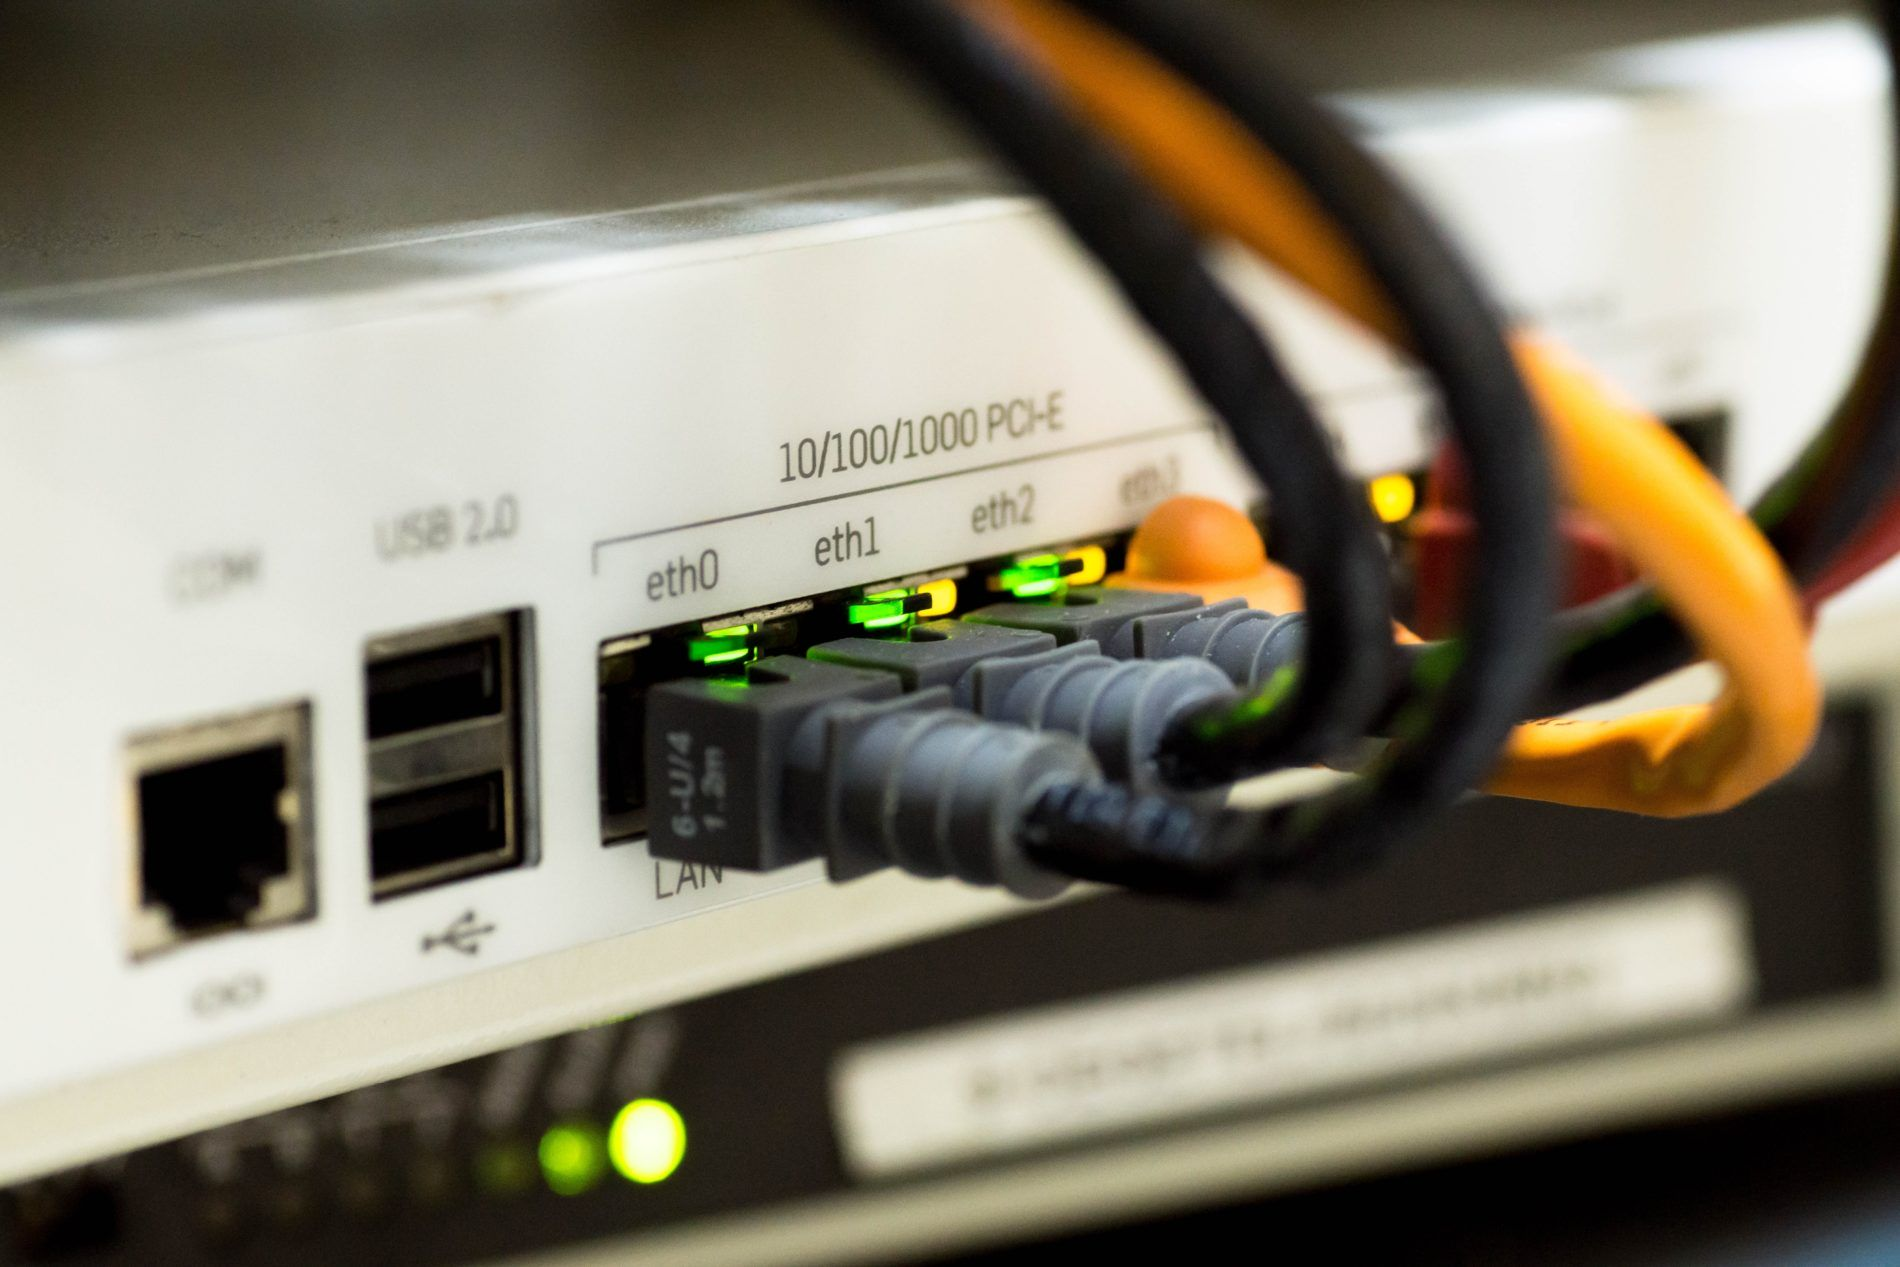 Poland maintains its position in the global internet speed ranking